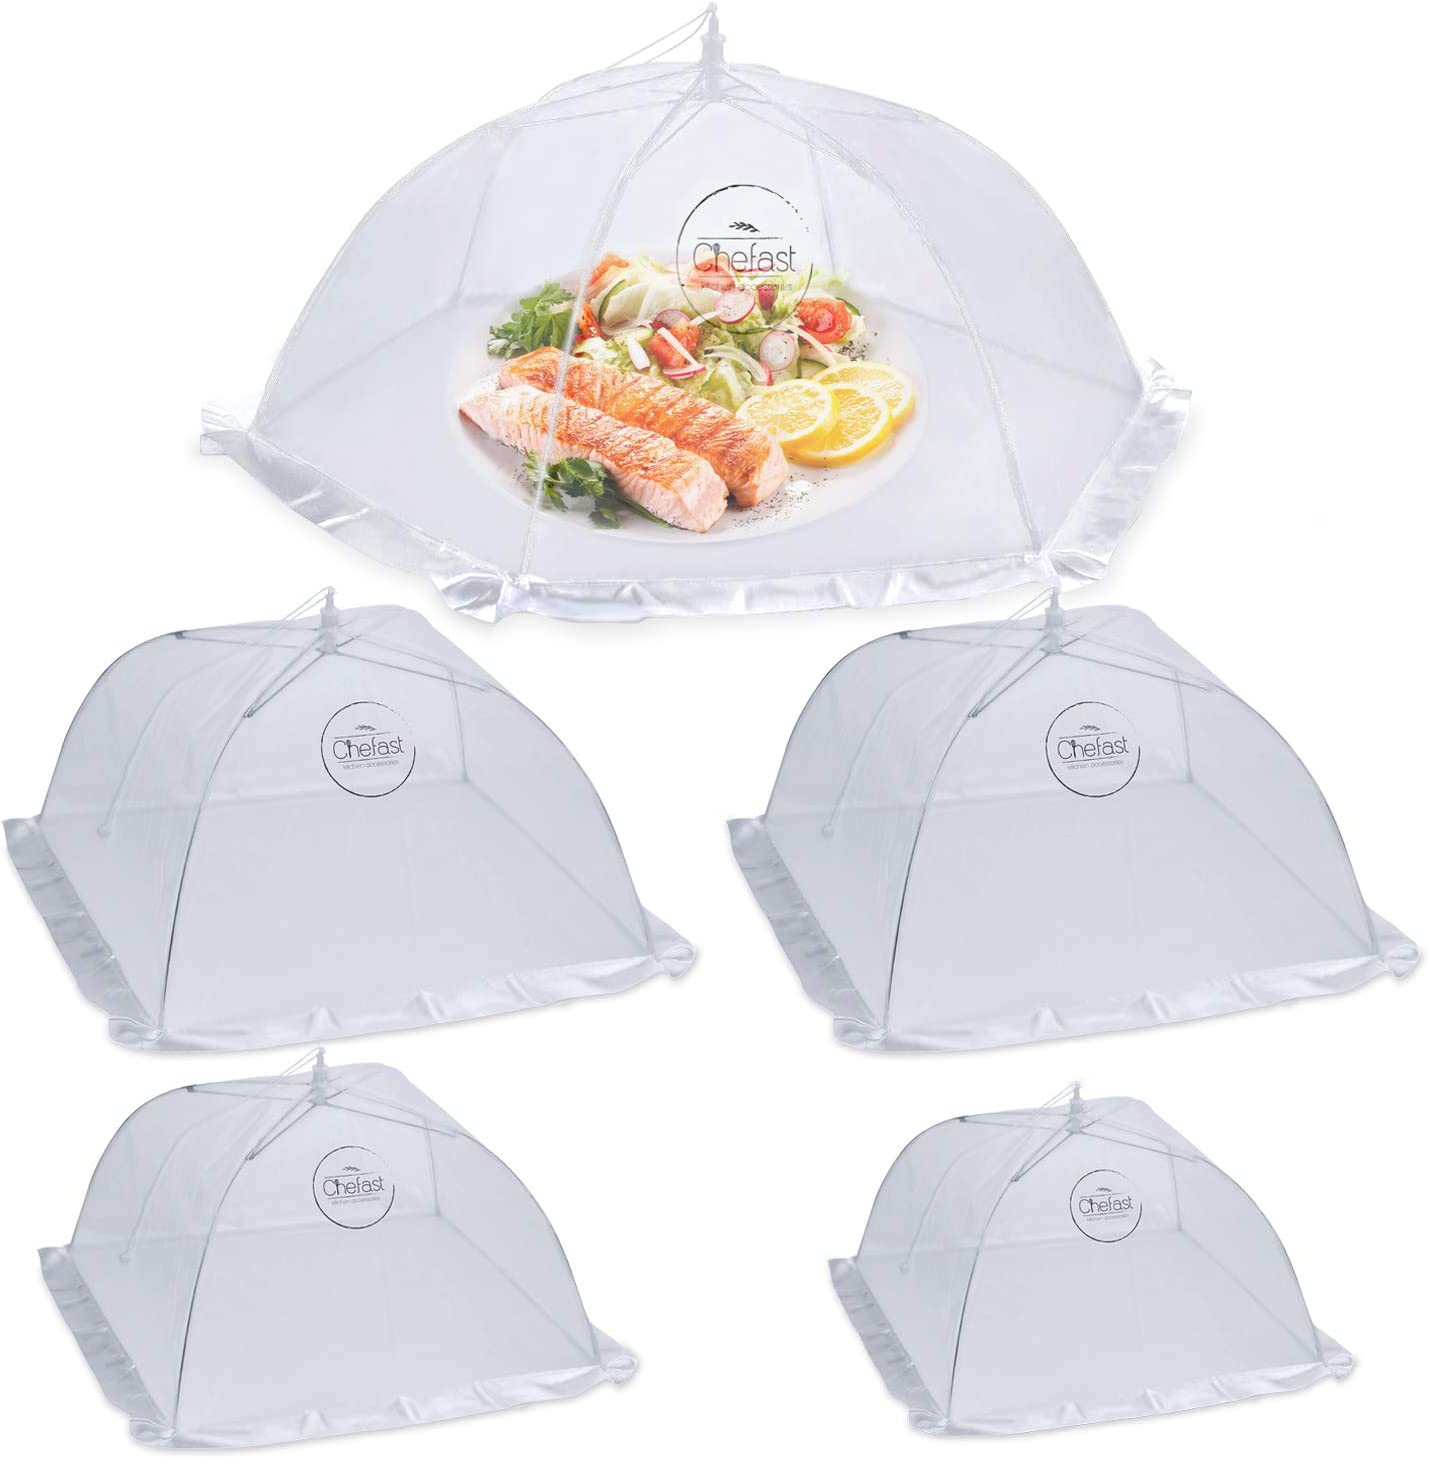 Chefast Food Cover Tent (5 Packs) - Pop Up Mesh Covers in 4 Sizes with Reusable Carry Bag - Protect Foods from Fruit Flies - Great for Picnics, and Outdoor BBQ